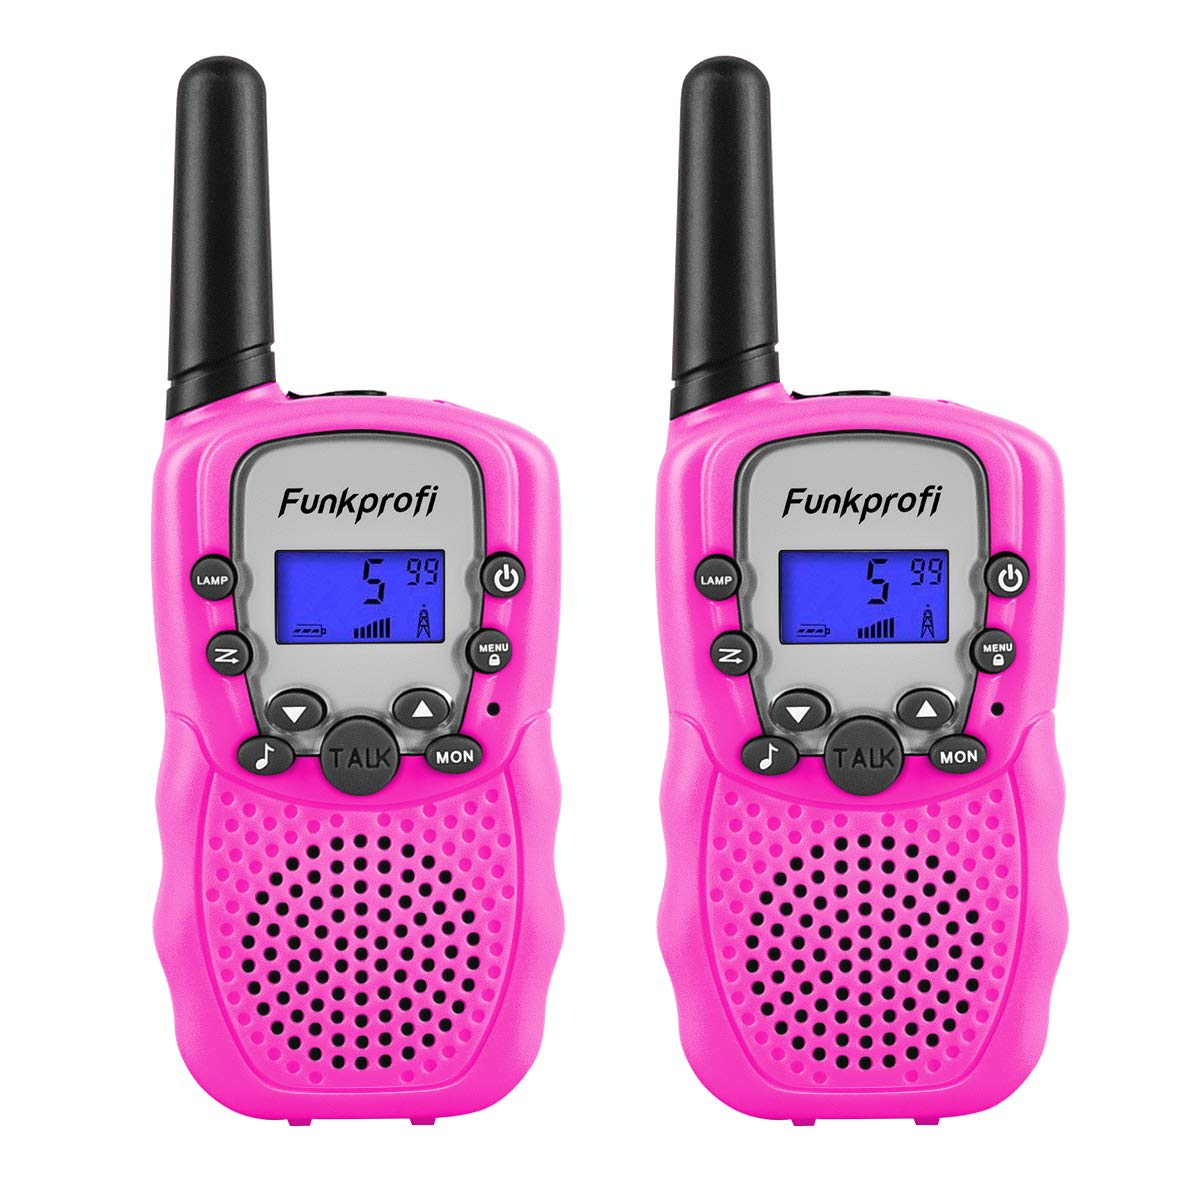 Funkprofi Walkie Talkies for Kids, VOX Hands Free Noise Canceling Kids Walkie Talkies with Belt Clip and LCD Screen, 22 Channels Long Range Two Way Radios for Camping Hiking Family Activities by Funkprofi (Image #1)